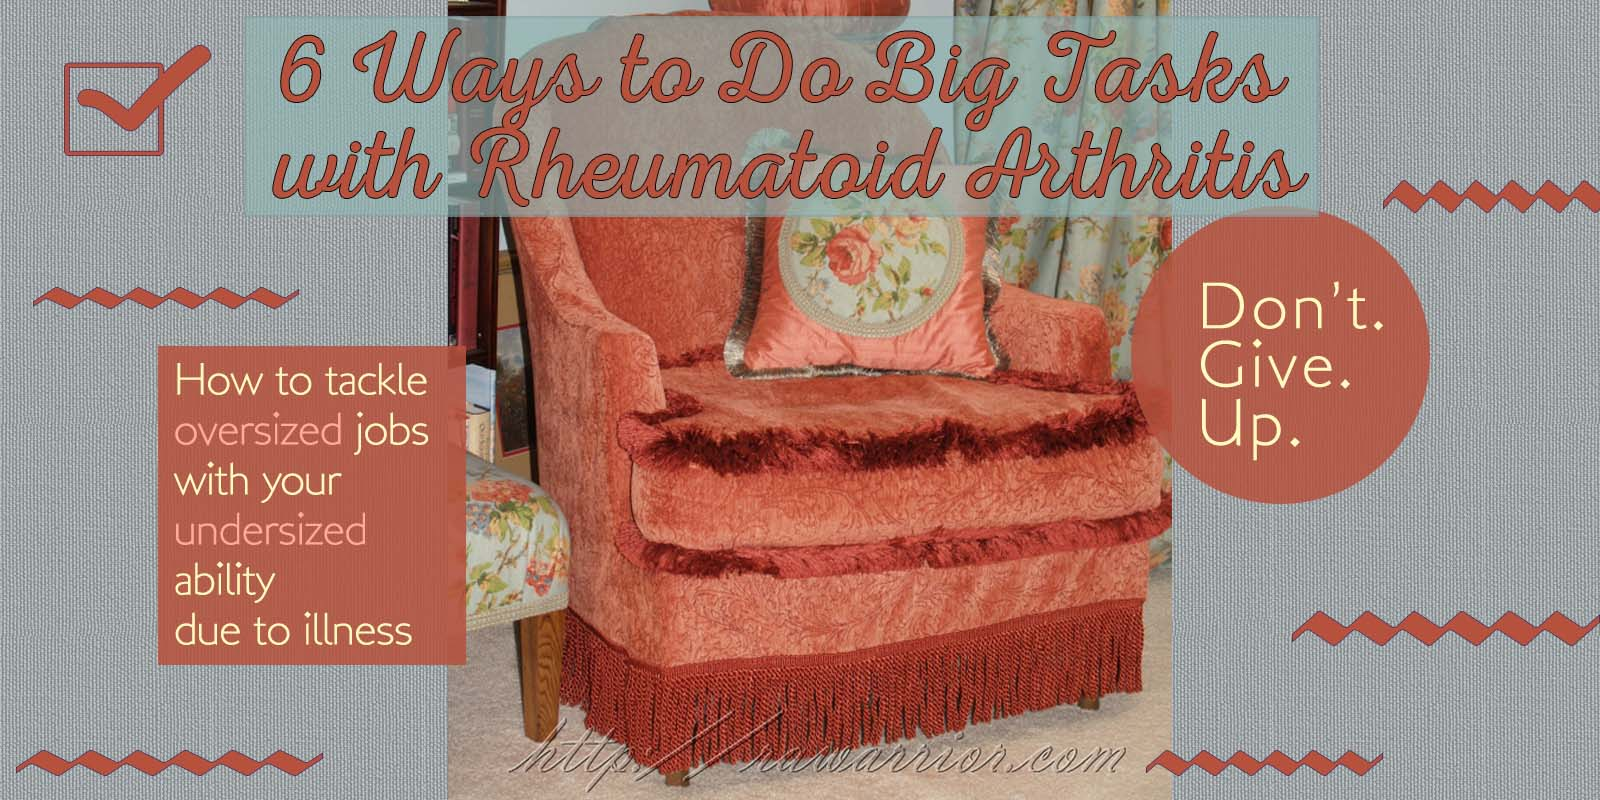 6 Ways to Do Big Tasks with Rheumatoid Arthritis